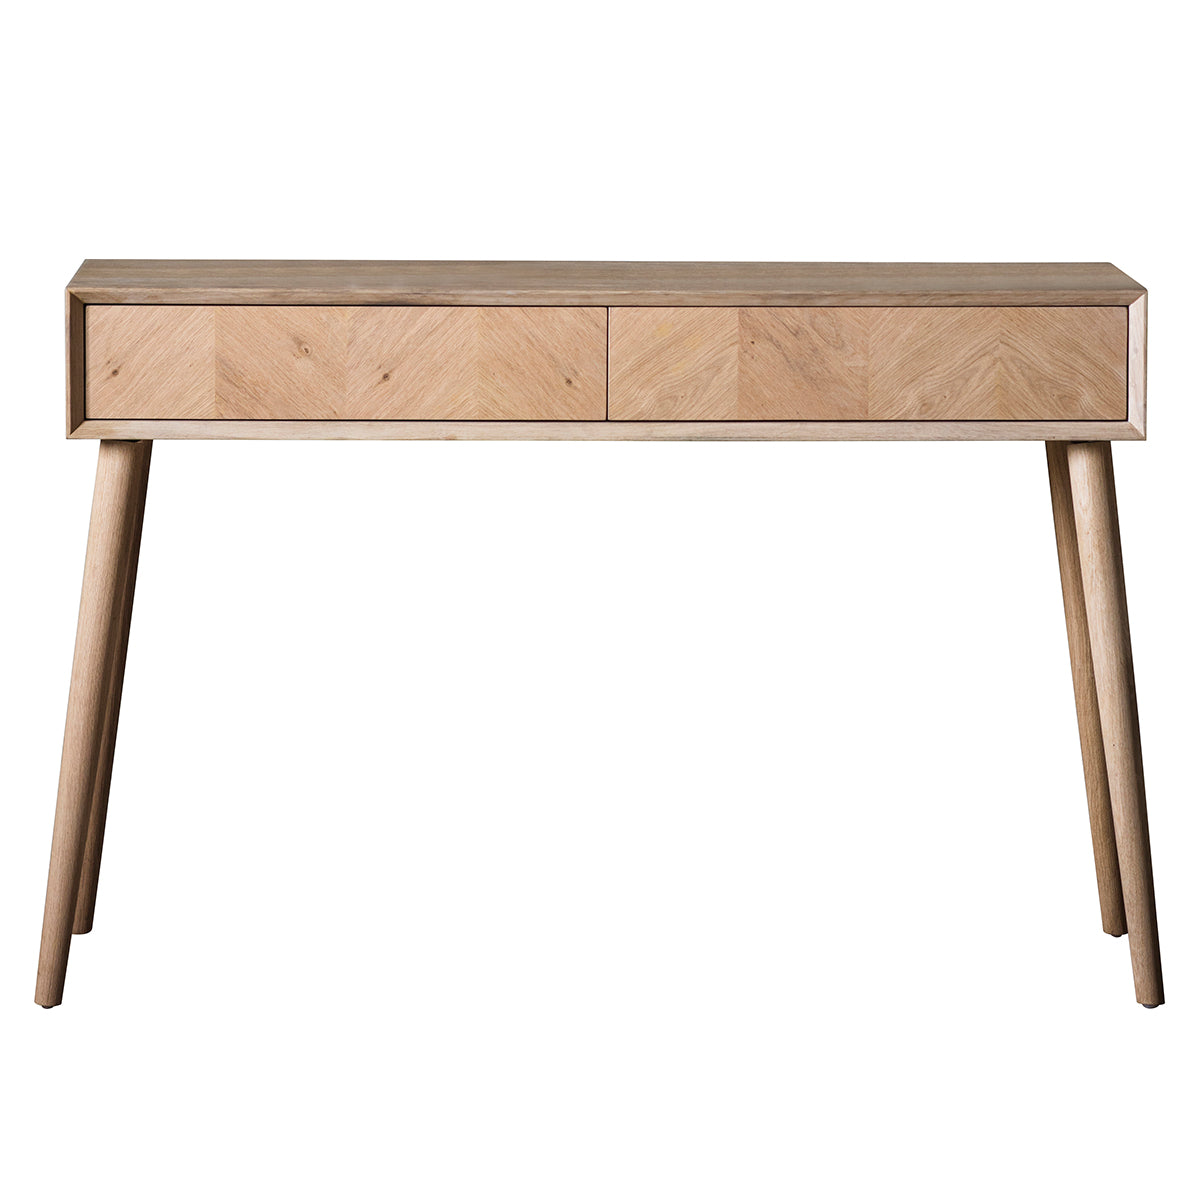 Veneto 2 Drawer Console Table - Ezzo